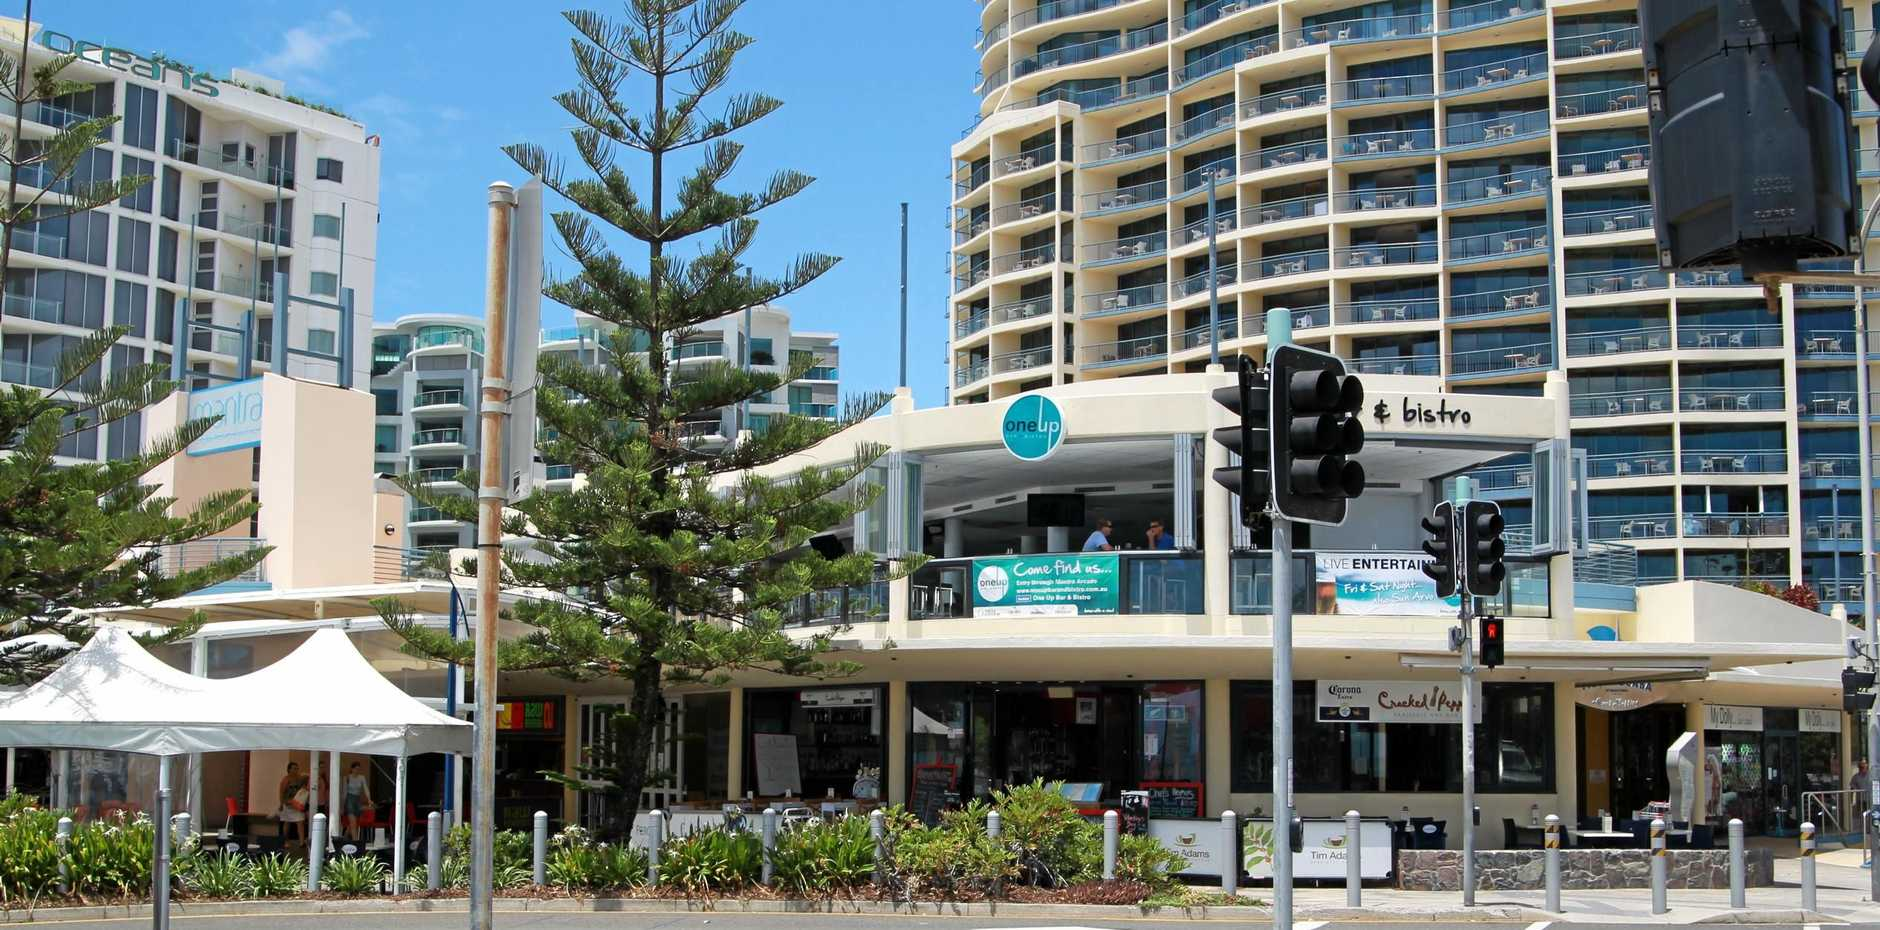 Mantra Mooloolaba is one of seven Sunshine Coast resorts that are about to be absorbed by the giant French AccorHotel group.